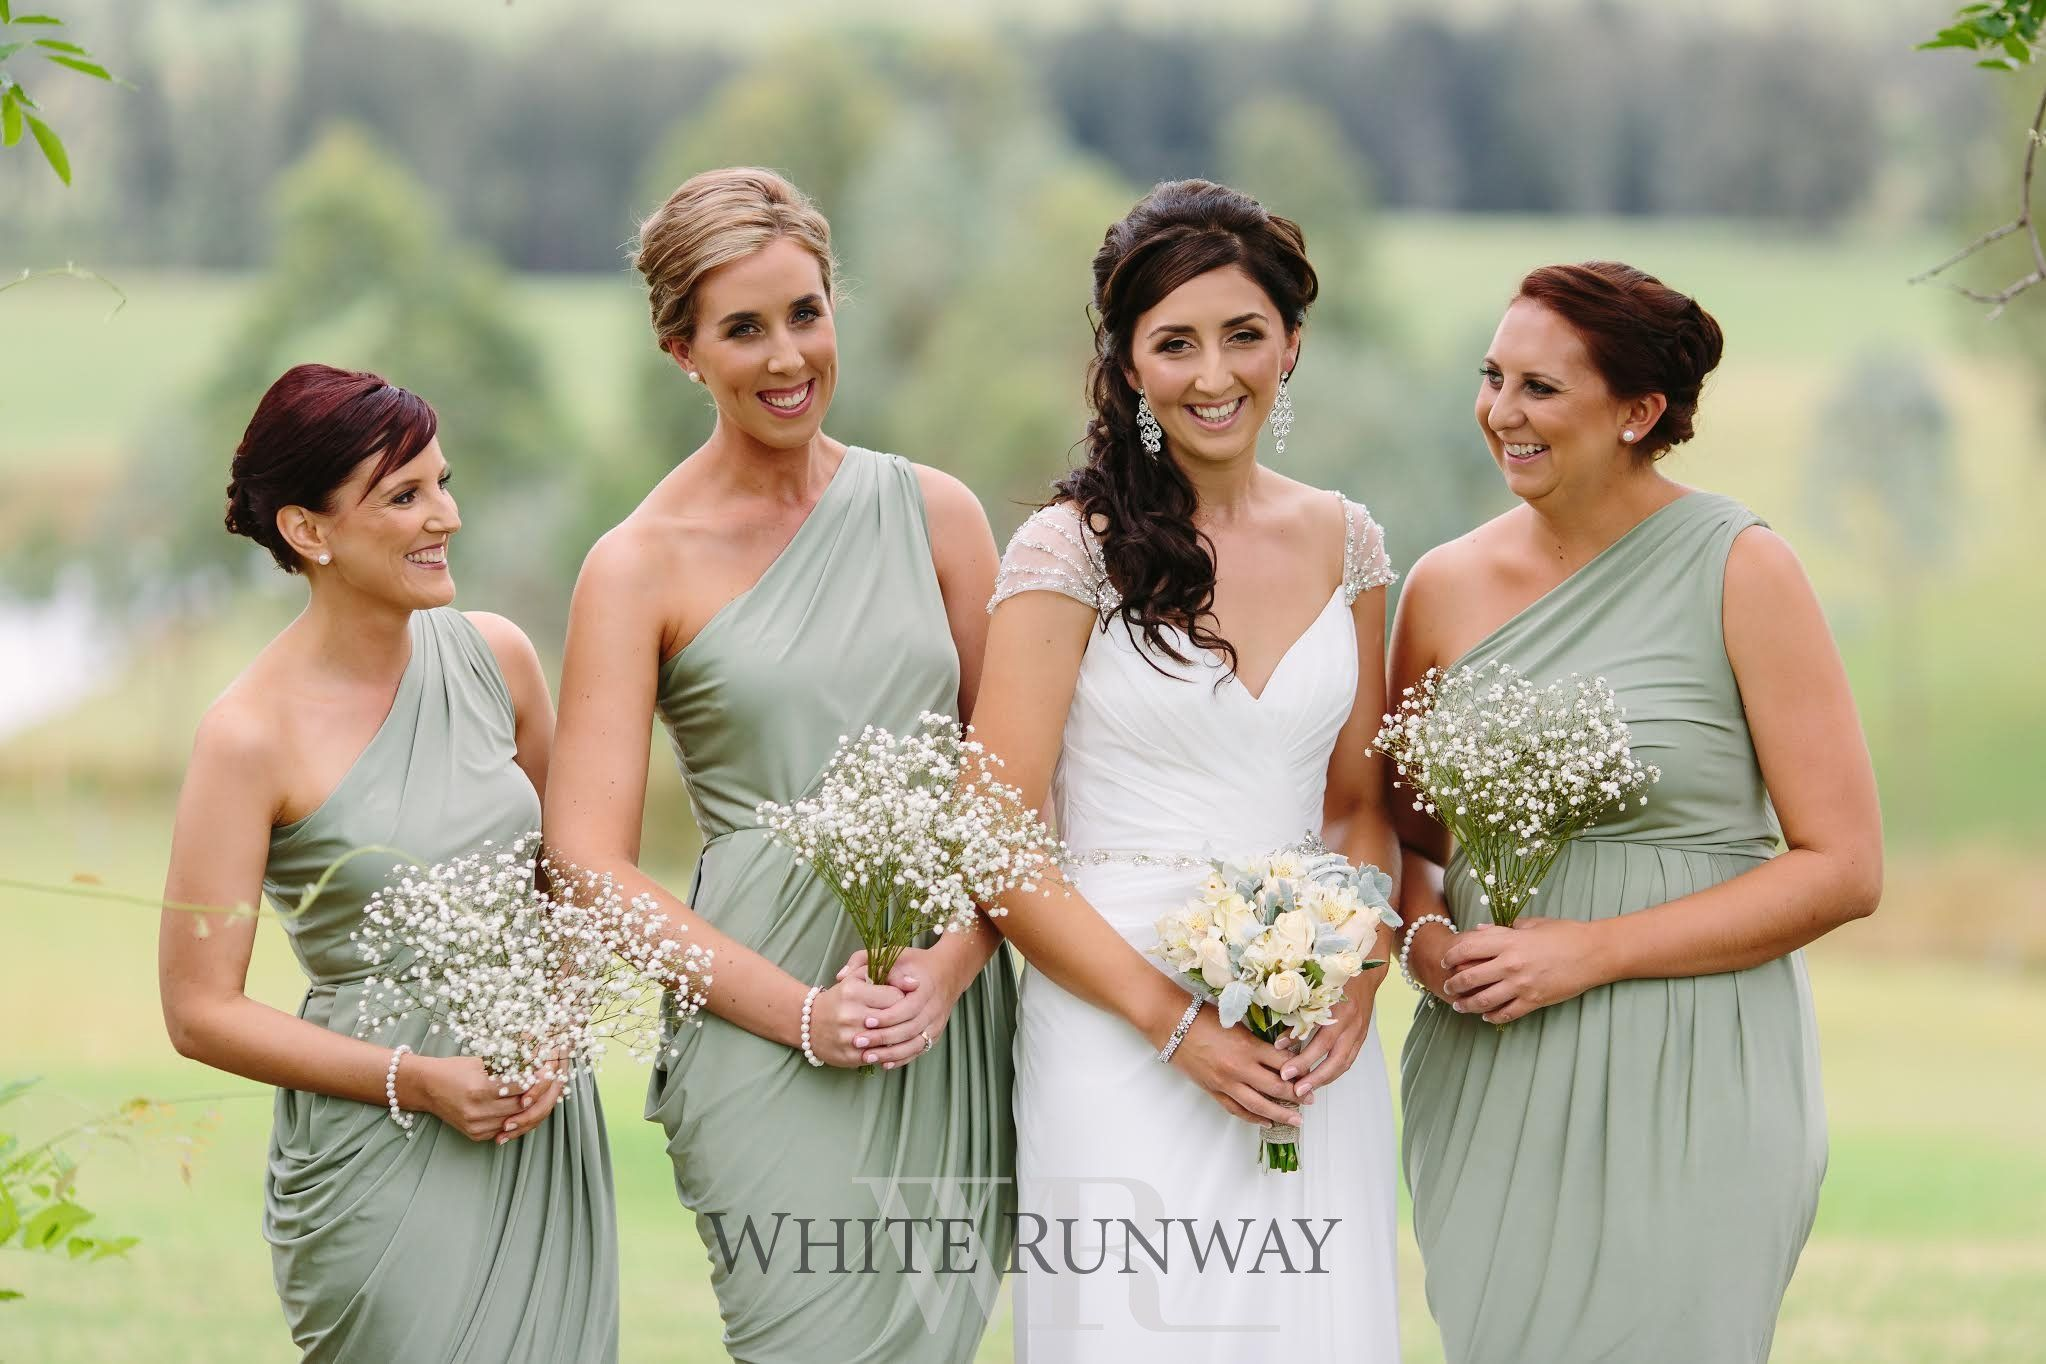 Our gorgeous bride jenna hunt chose our geneva dress by pia gladys